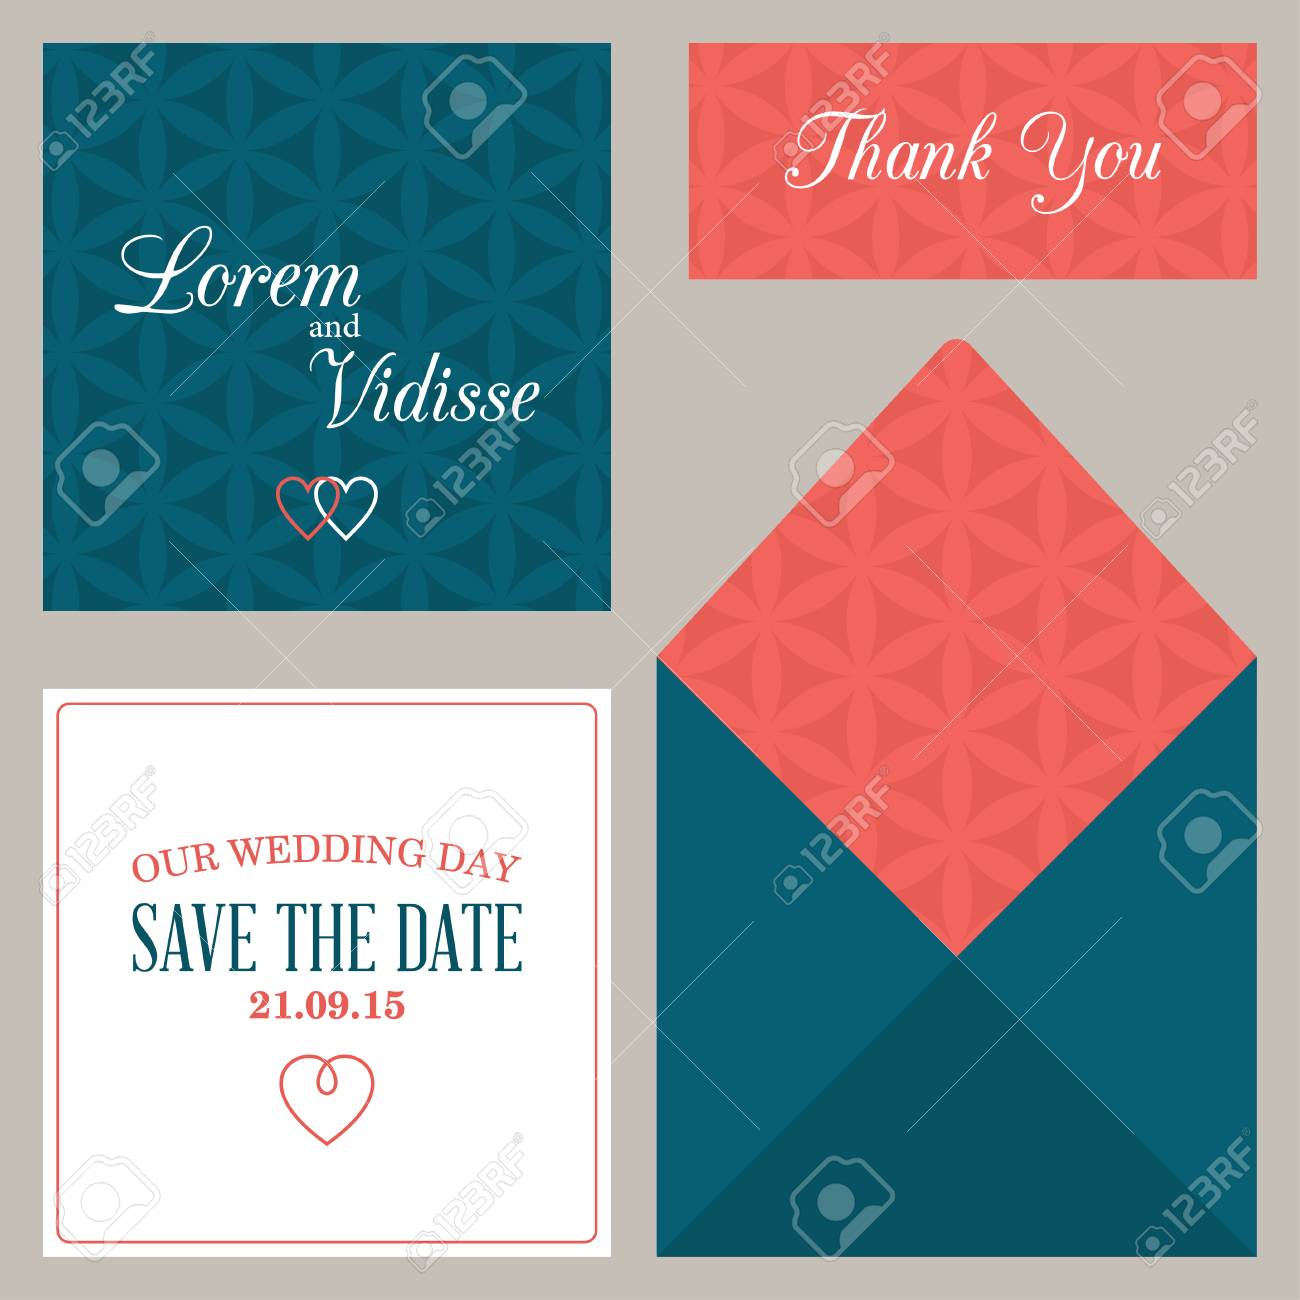 Vector Design Template Of Wedding Invitation With Envelope Royalty ...